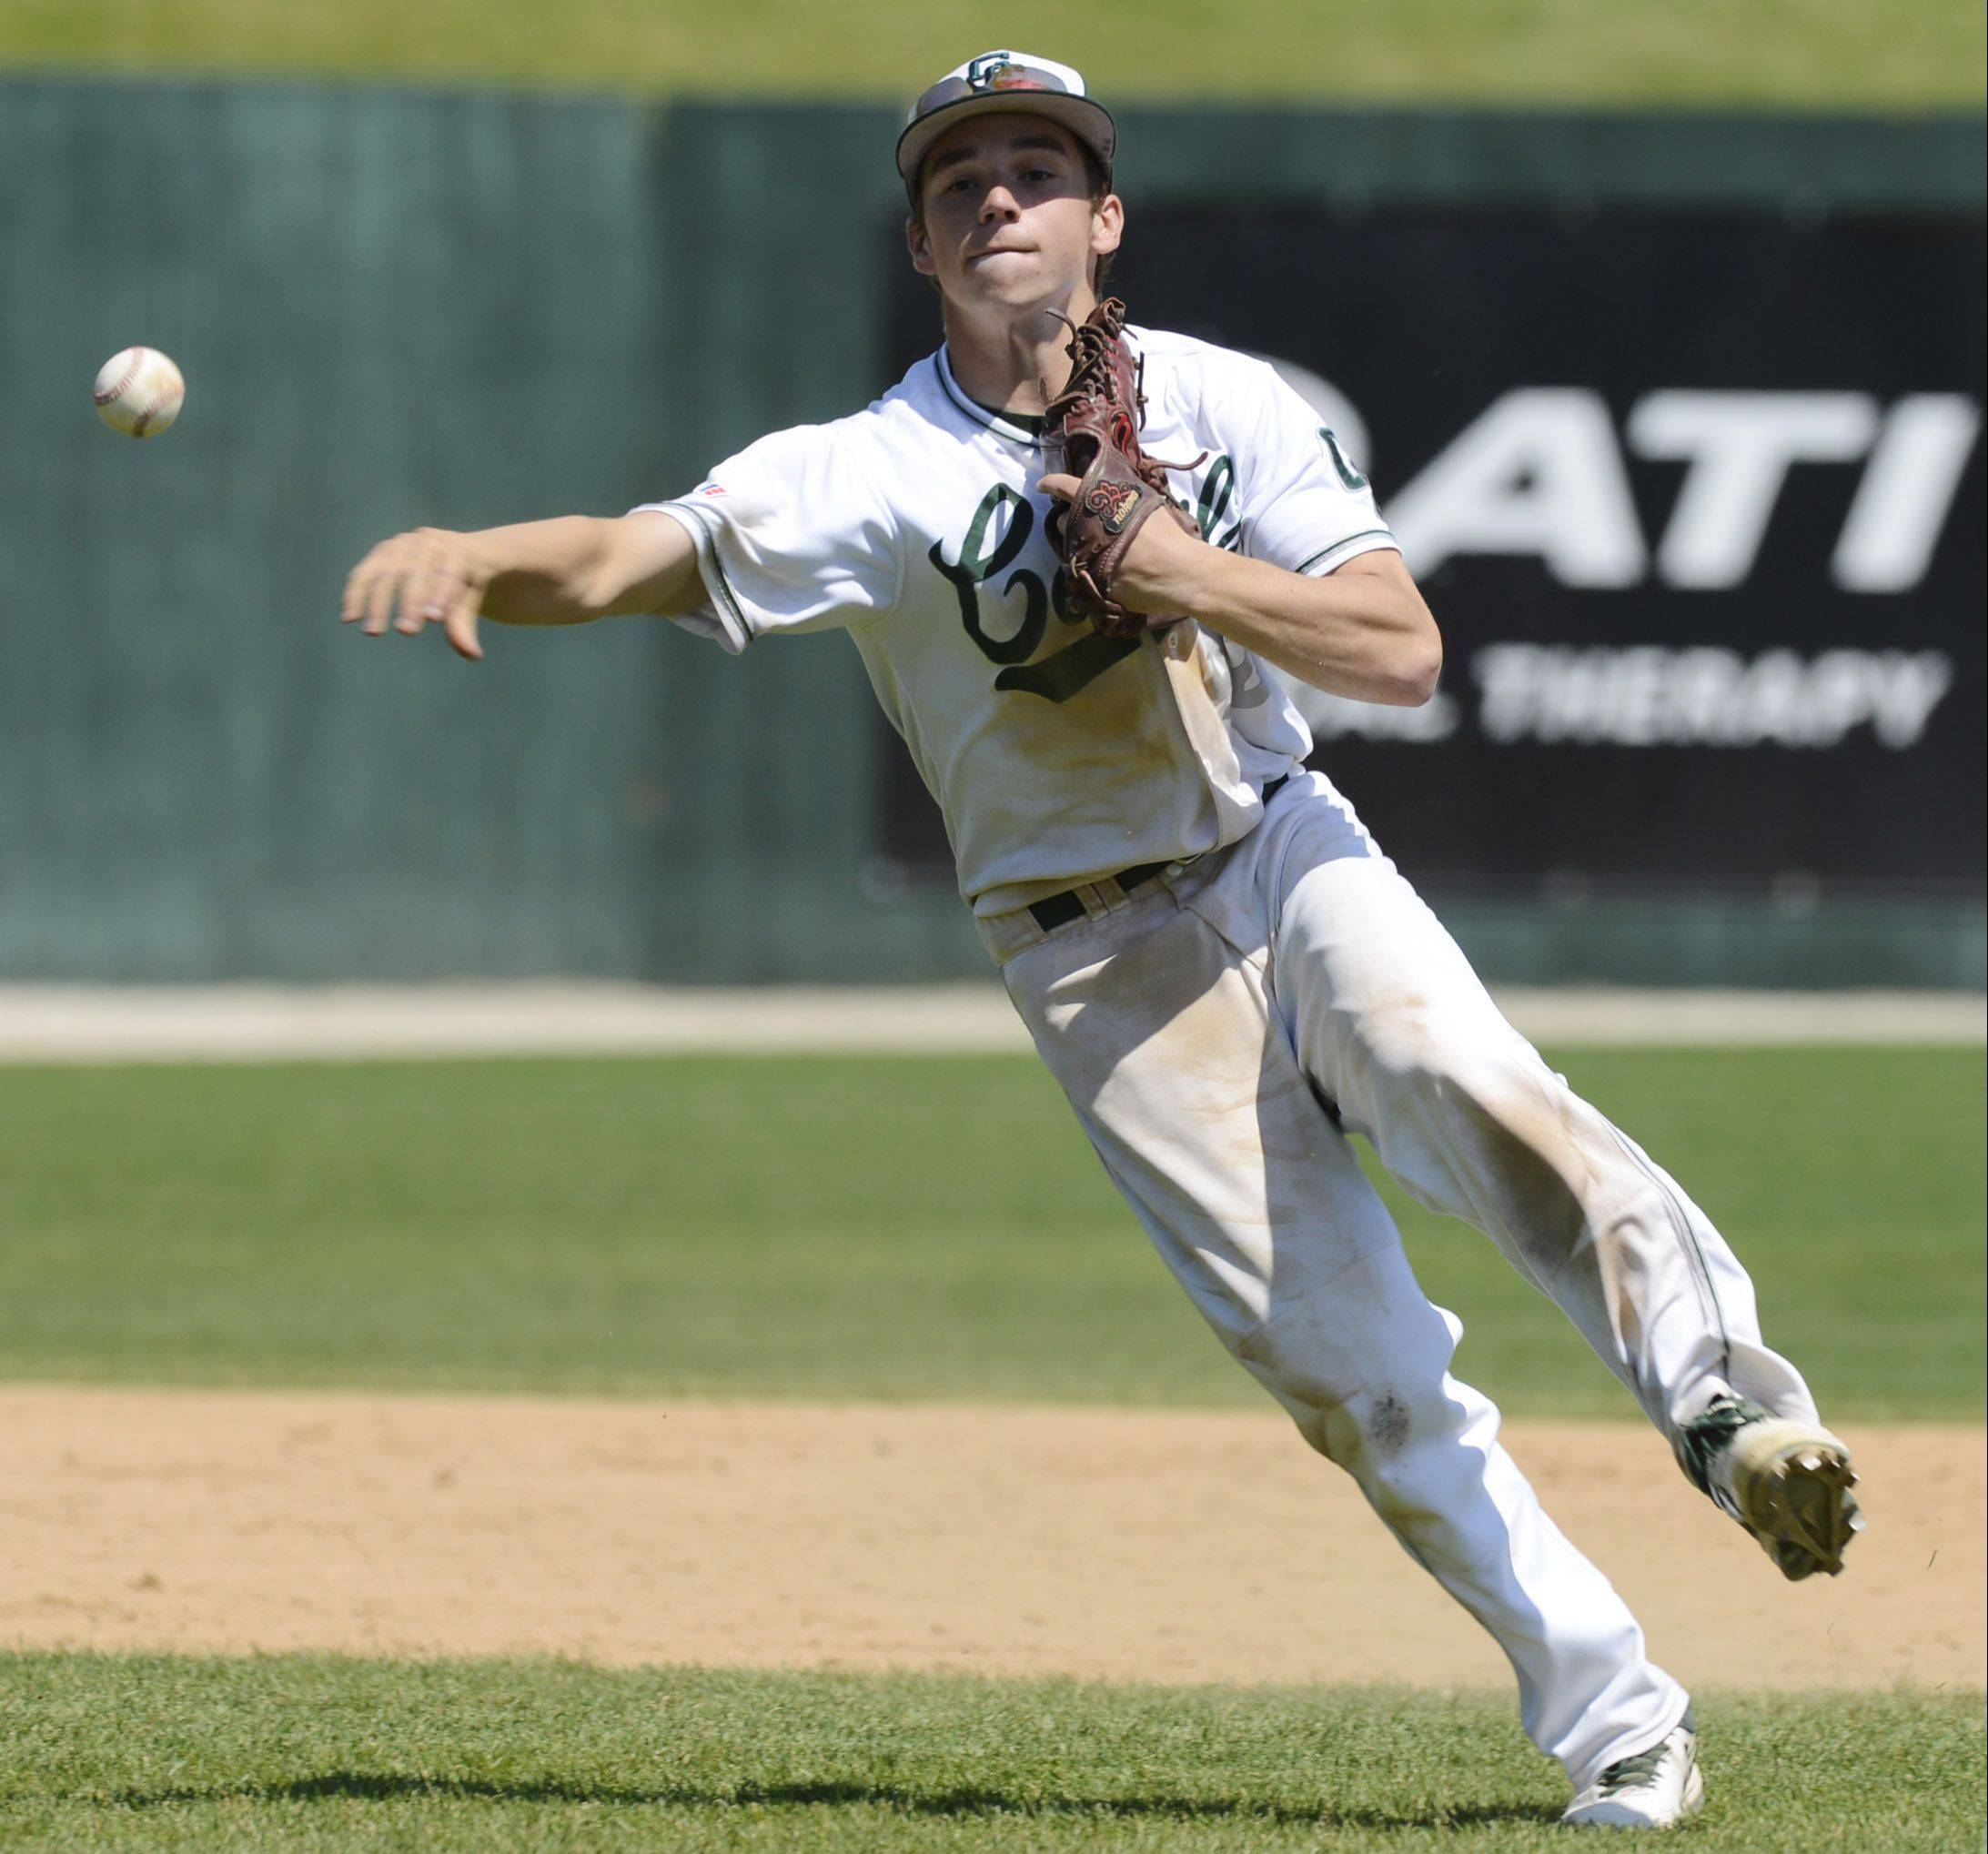 Grayslake Central's Ryan Fontana makes a throw to first during the Class 3A state baseball semifinal against St. Francis at Silver Cross Field in Joliet on Friday.